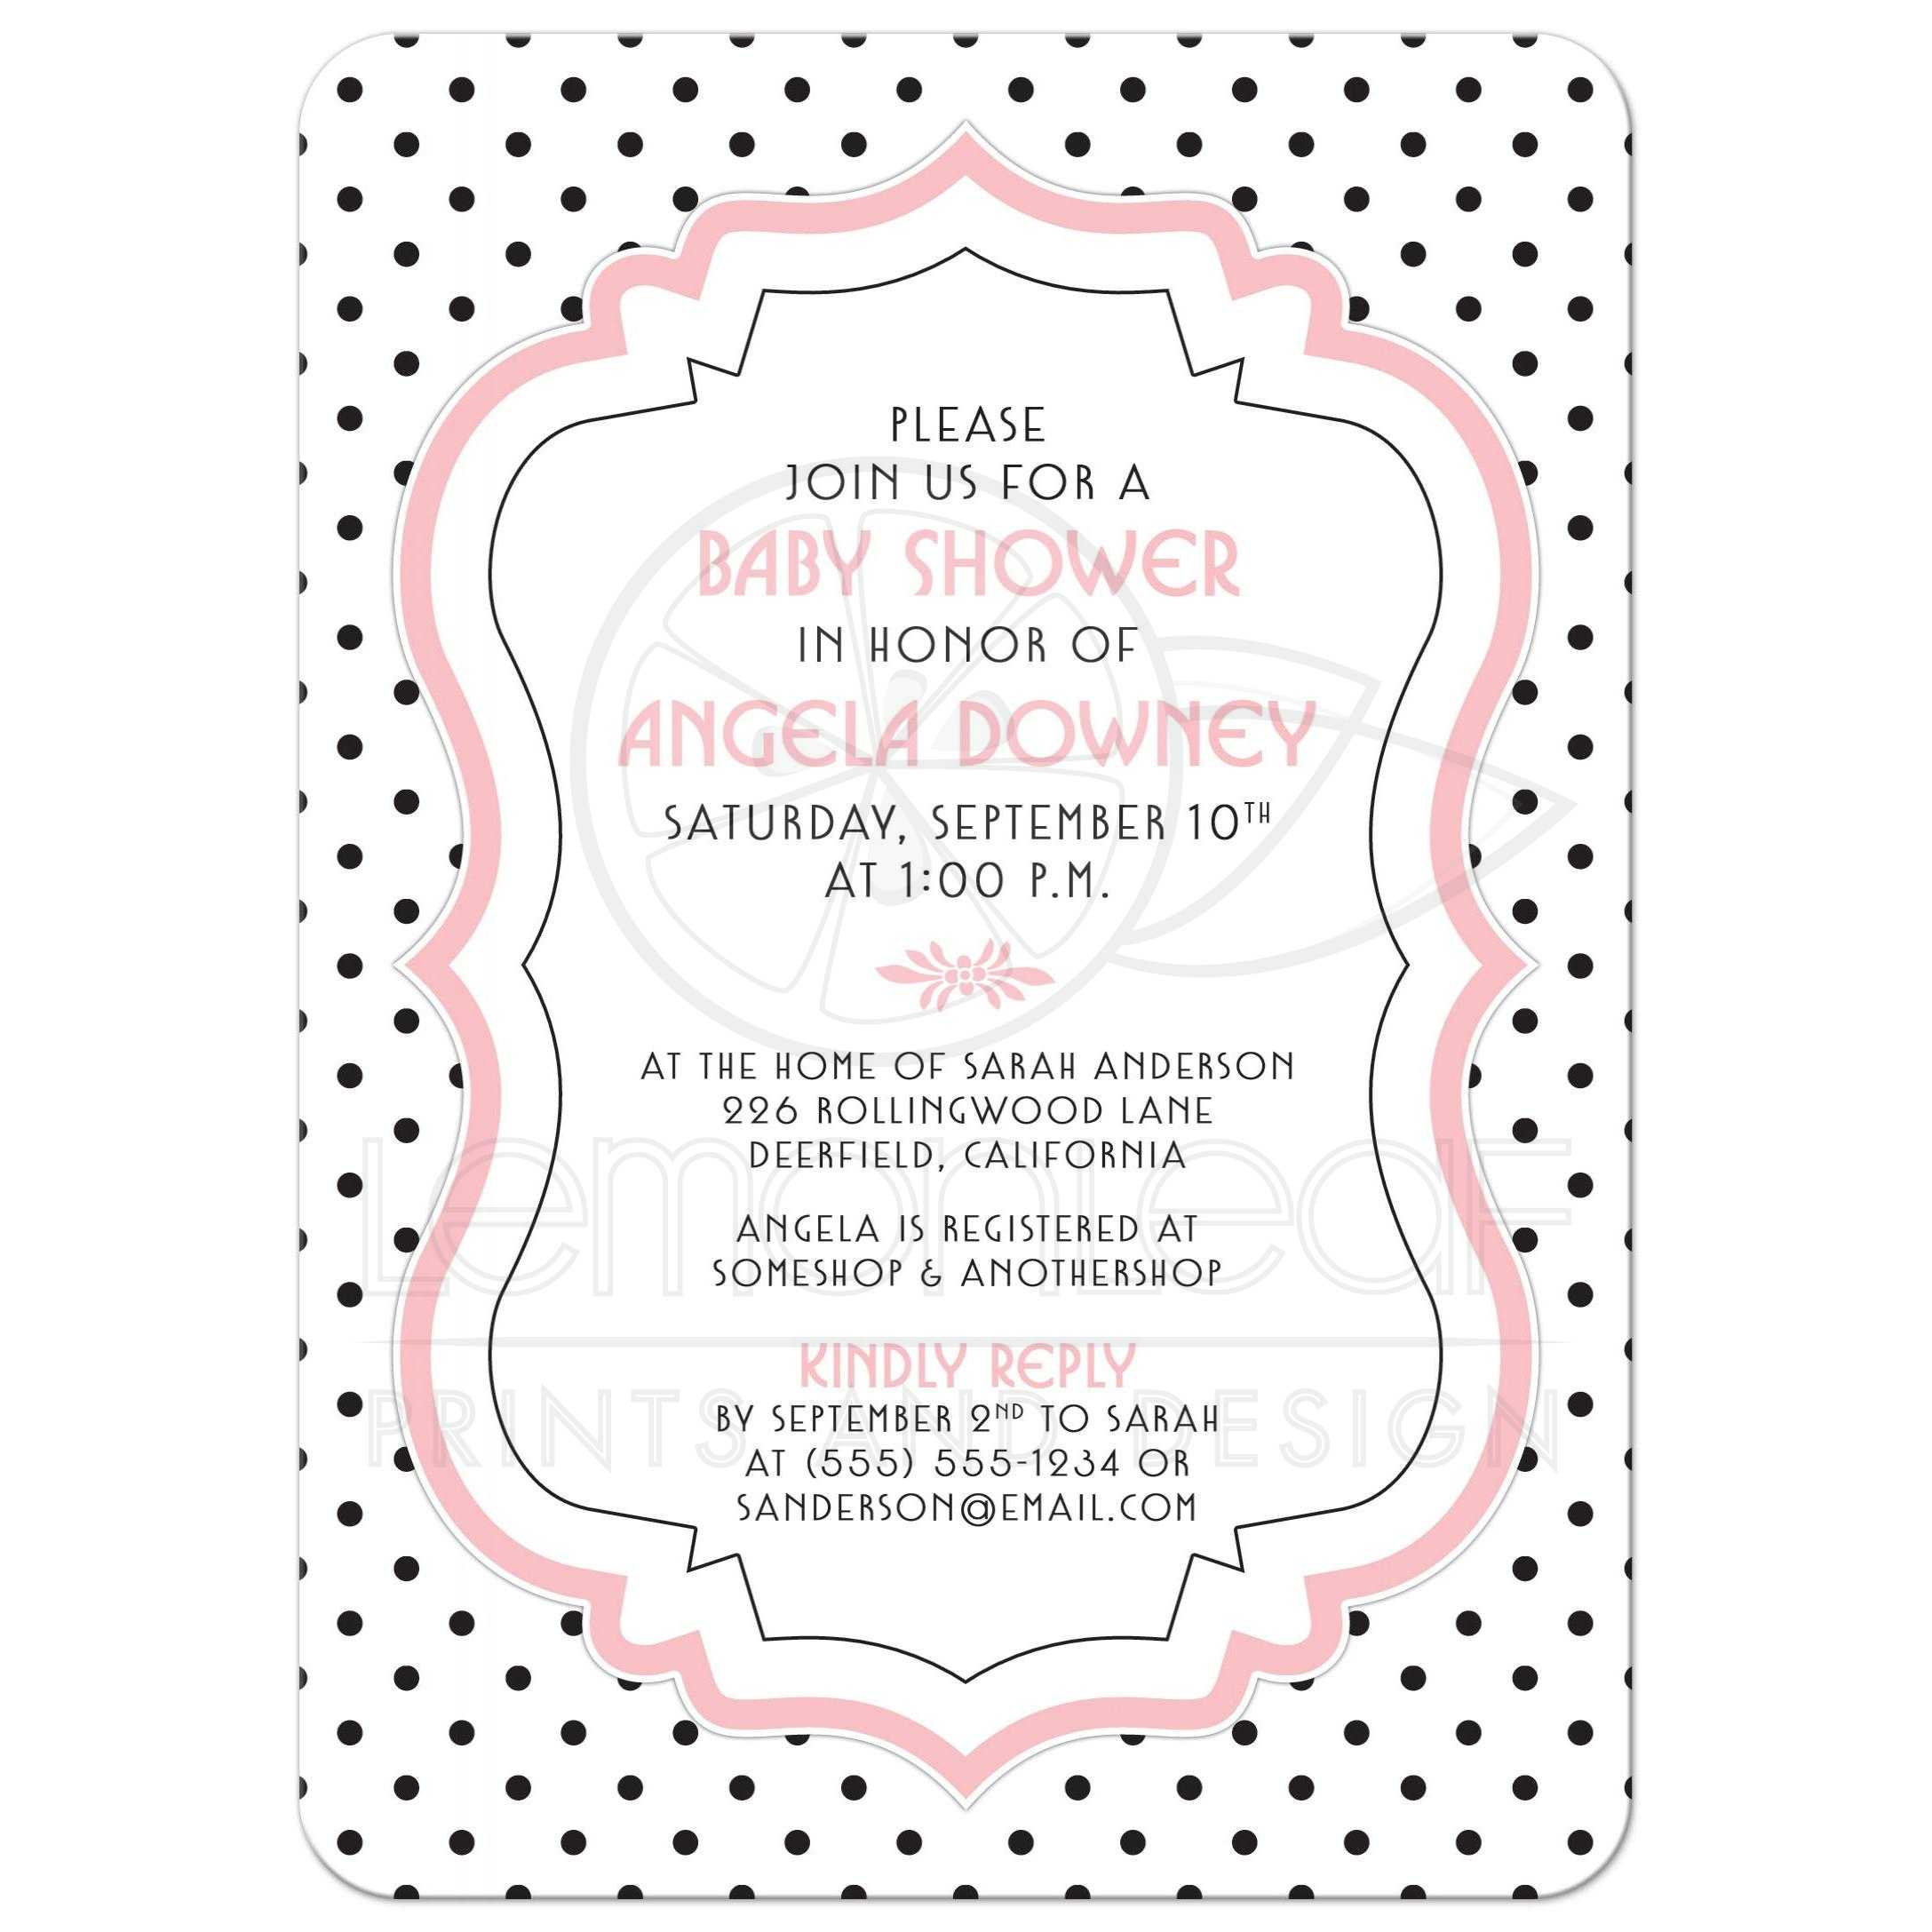 Baby Shower Invite Chic Retro Black White Polka Dots Pink